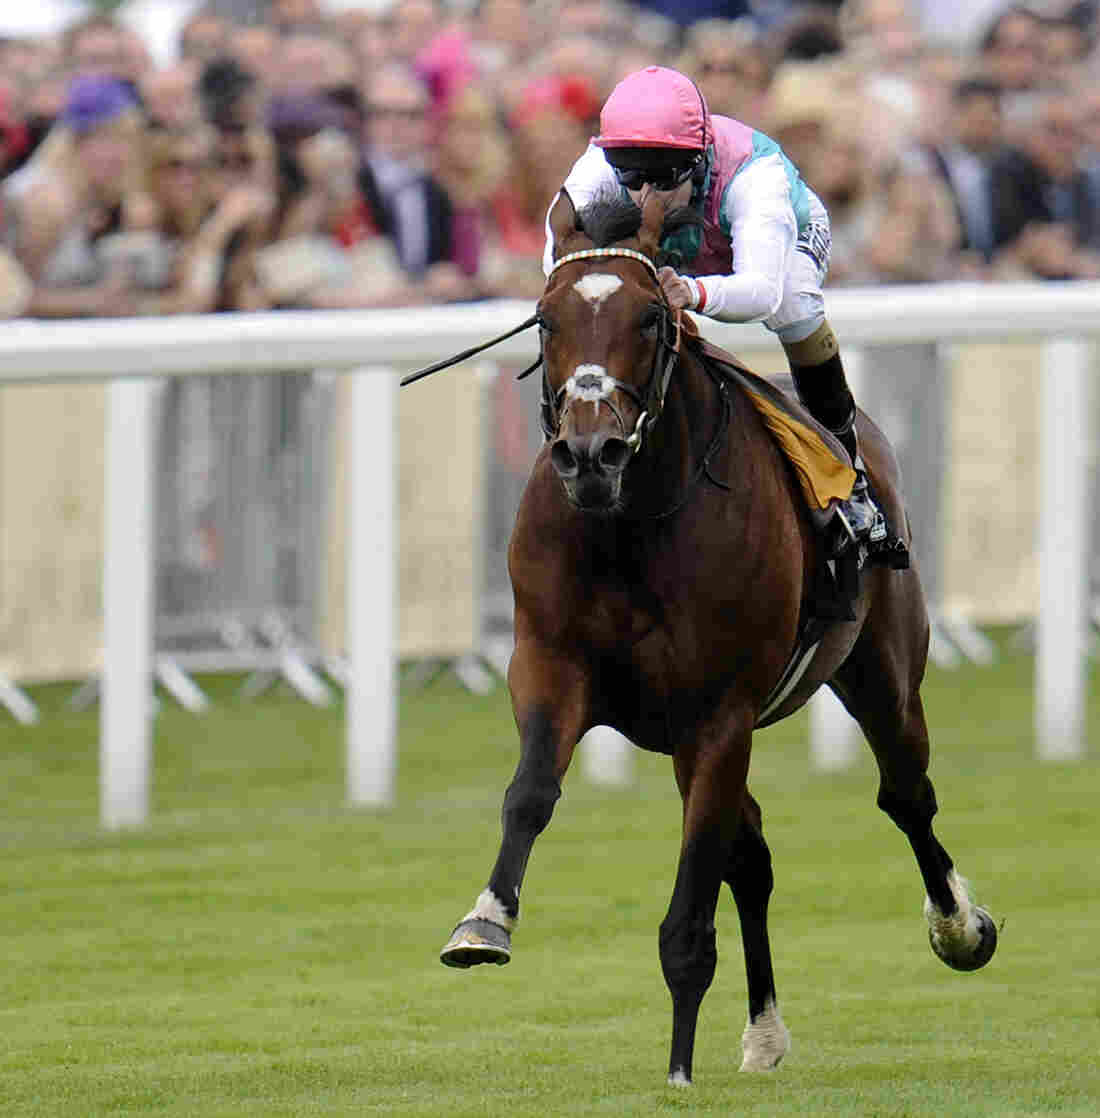 Frankel, with jockey Tom Queally aboard, as he sped away with the win today at Royal Ascot.